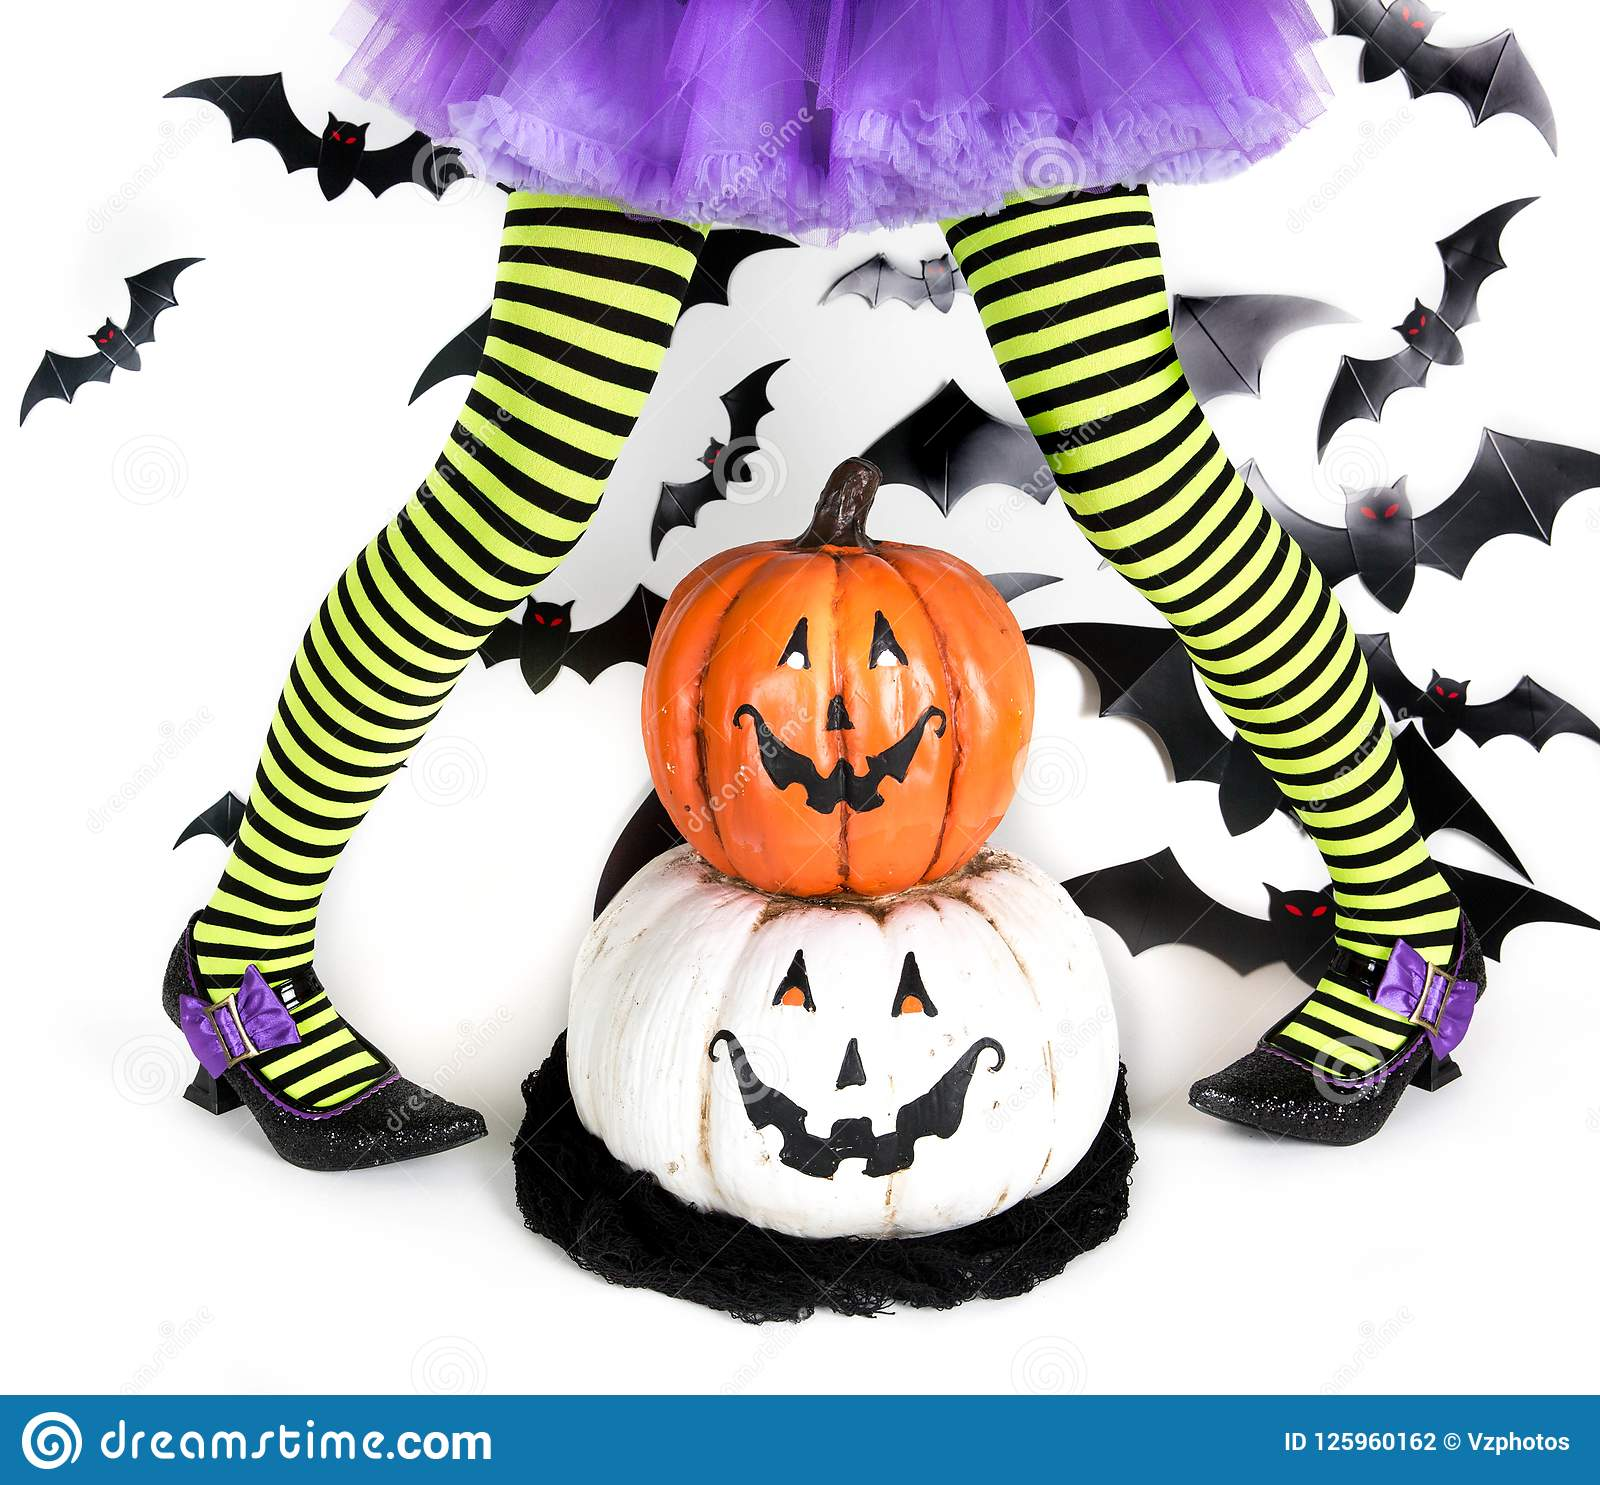 Funny green black Striped legs of a little girl with halloween costume of a witch with witch shoes and smiley halloween pumpkin